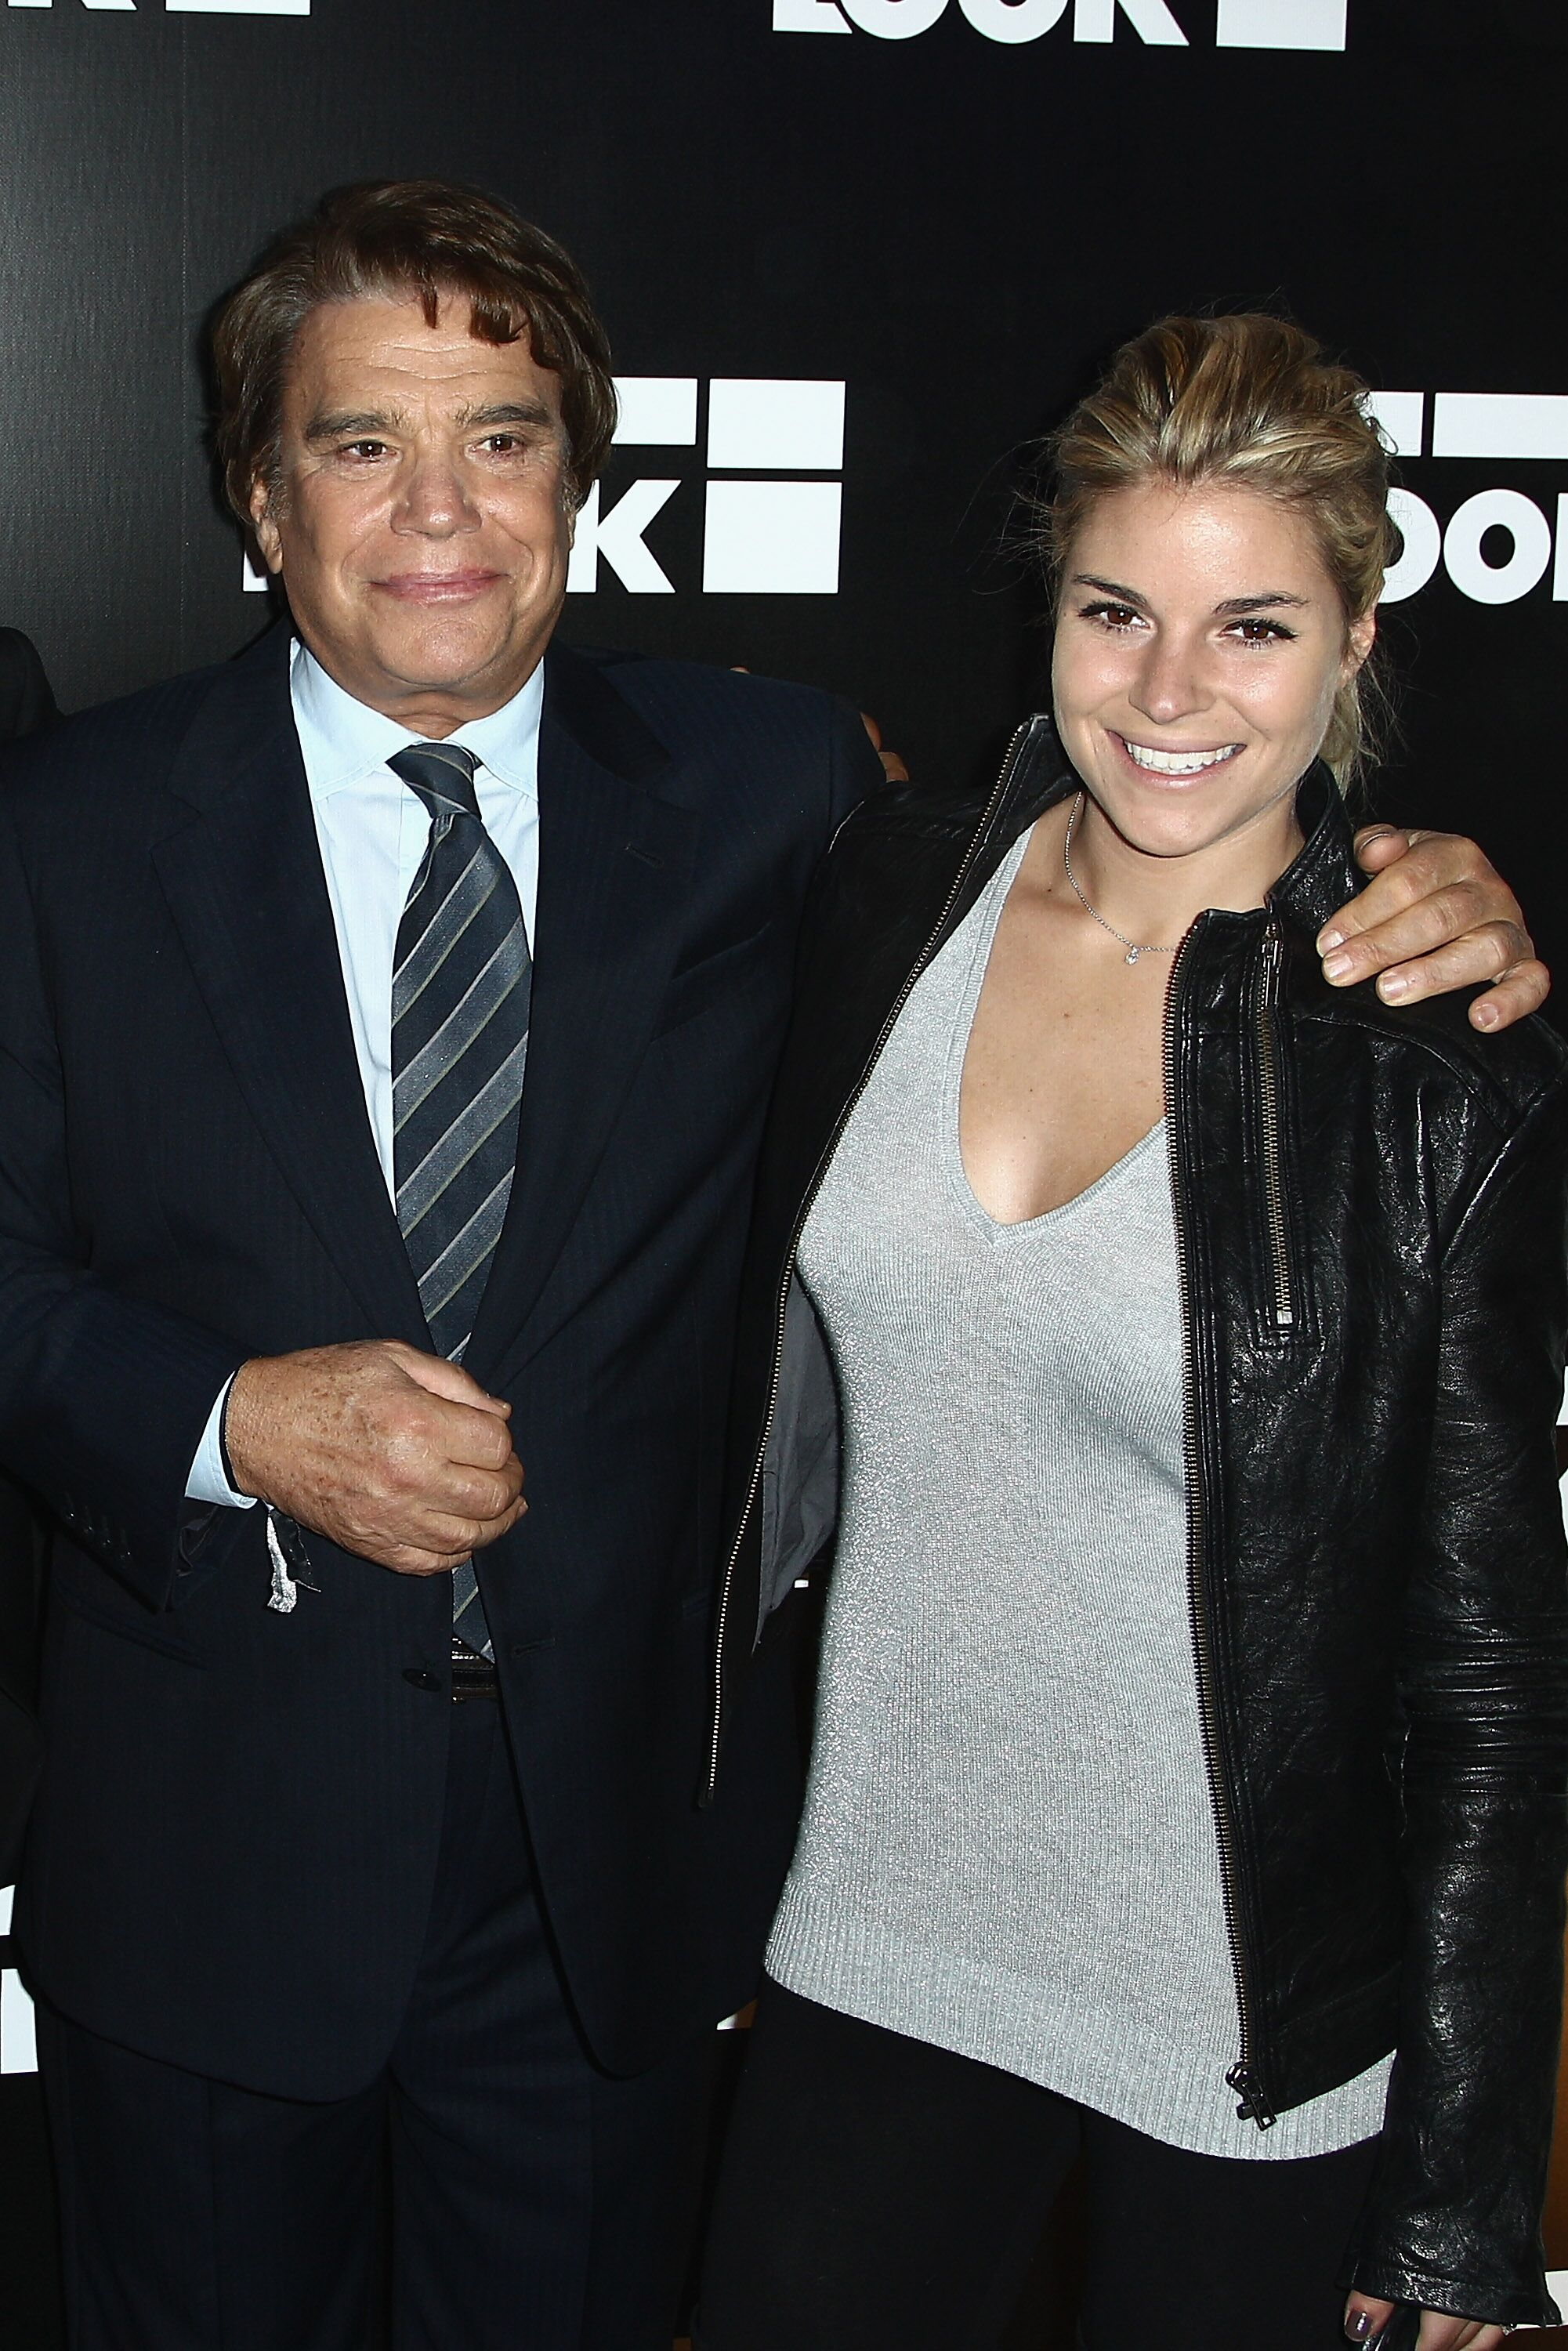 Bernard Tapie et sa fille Sophie / Source : Getty Images